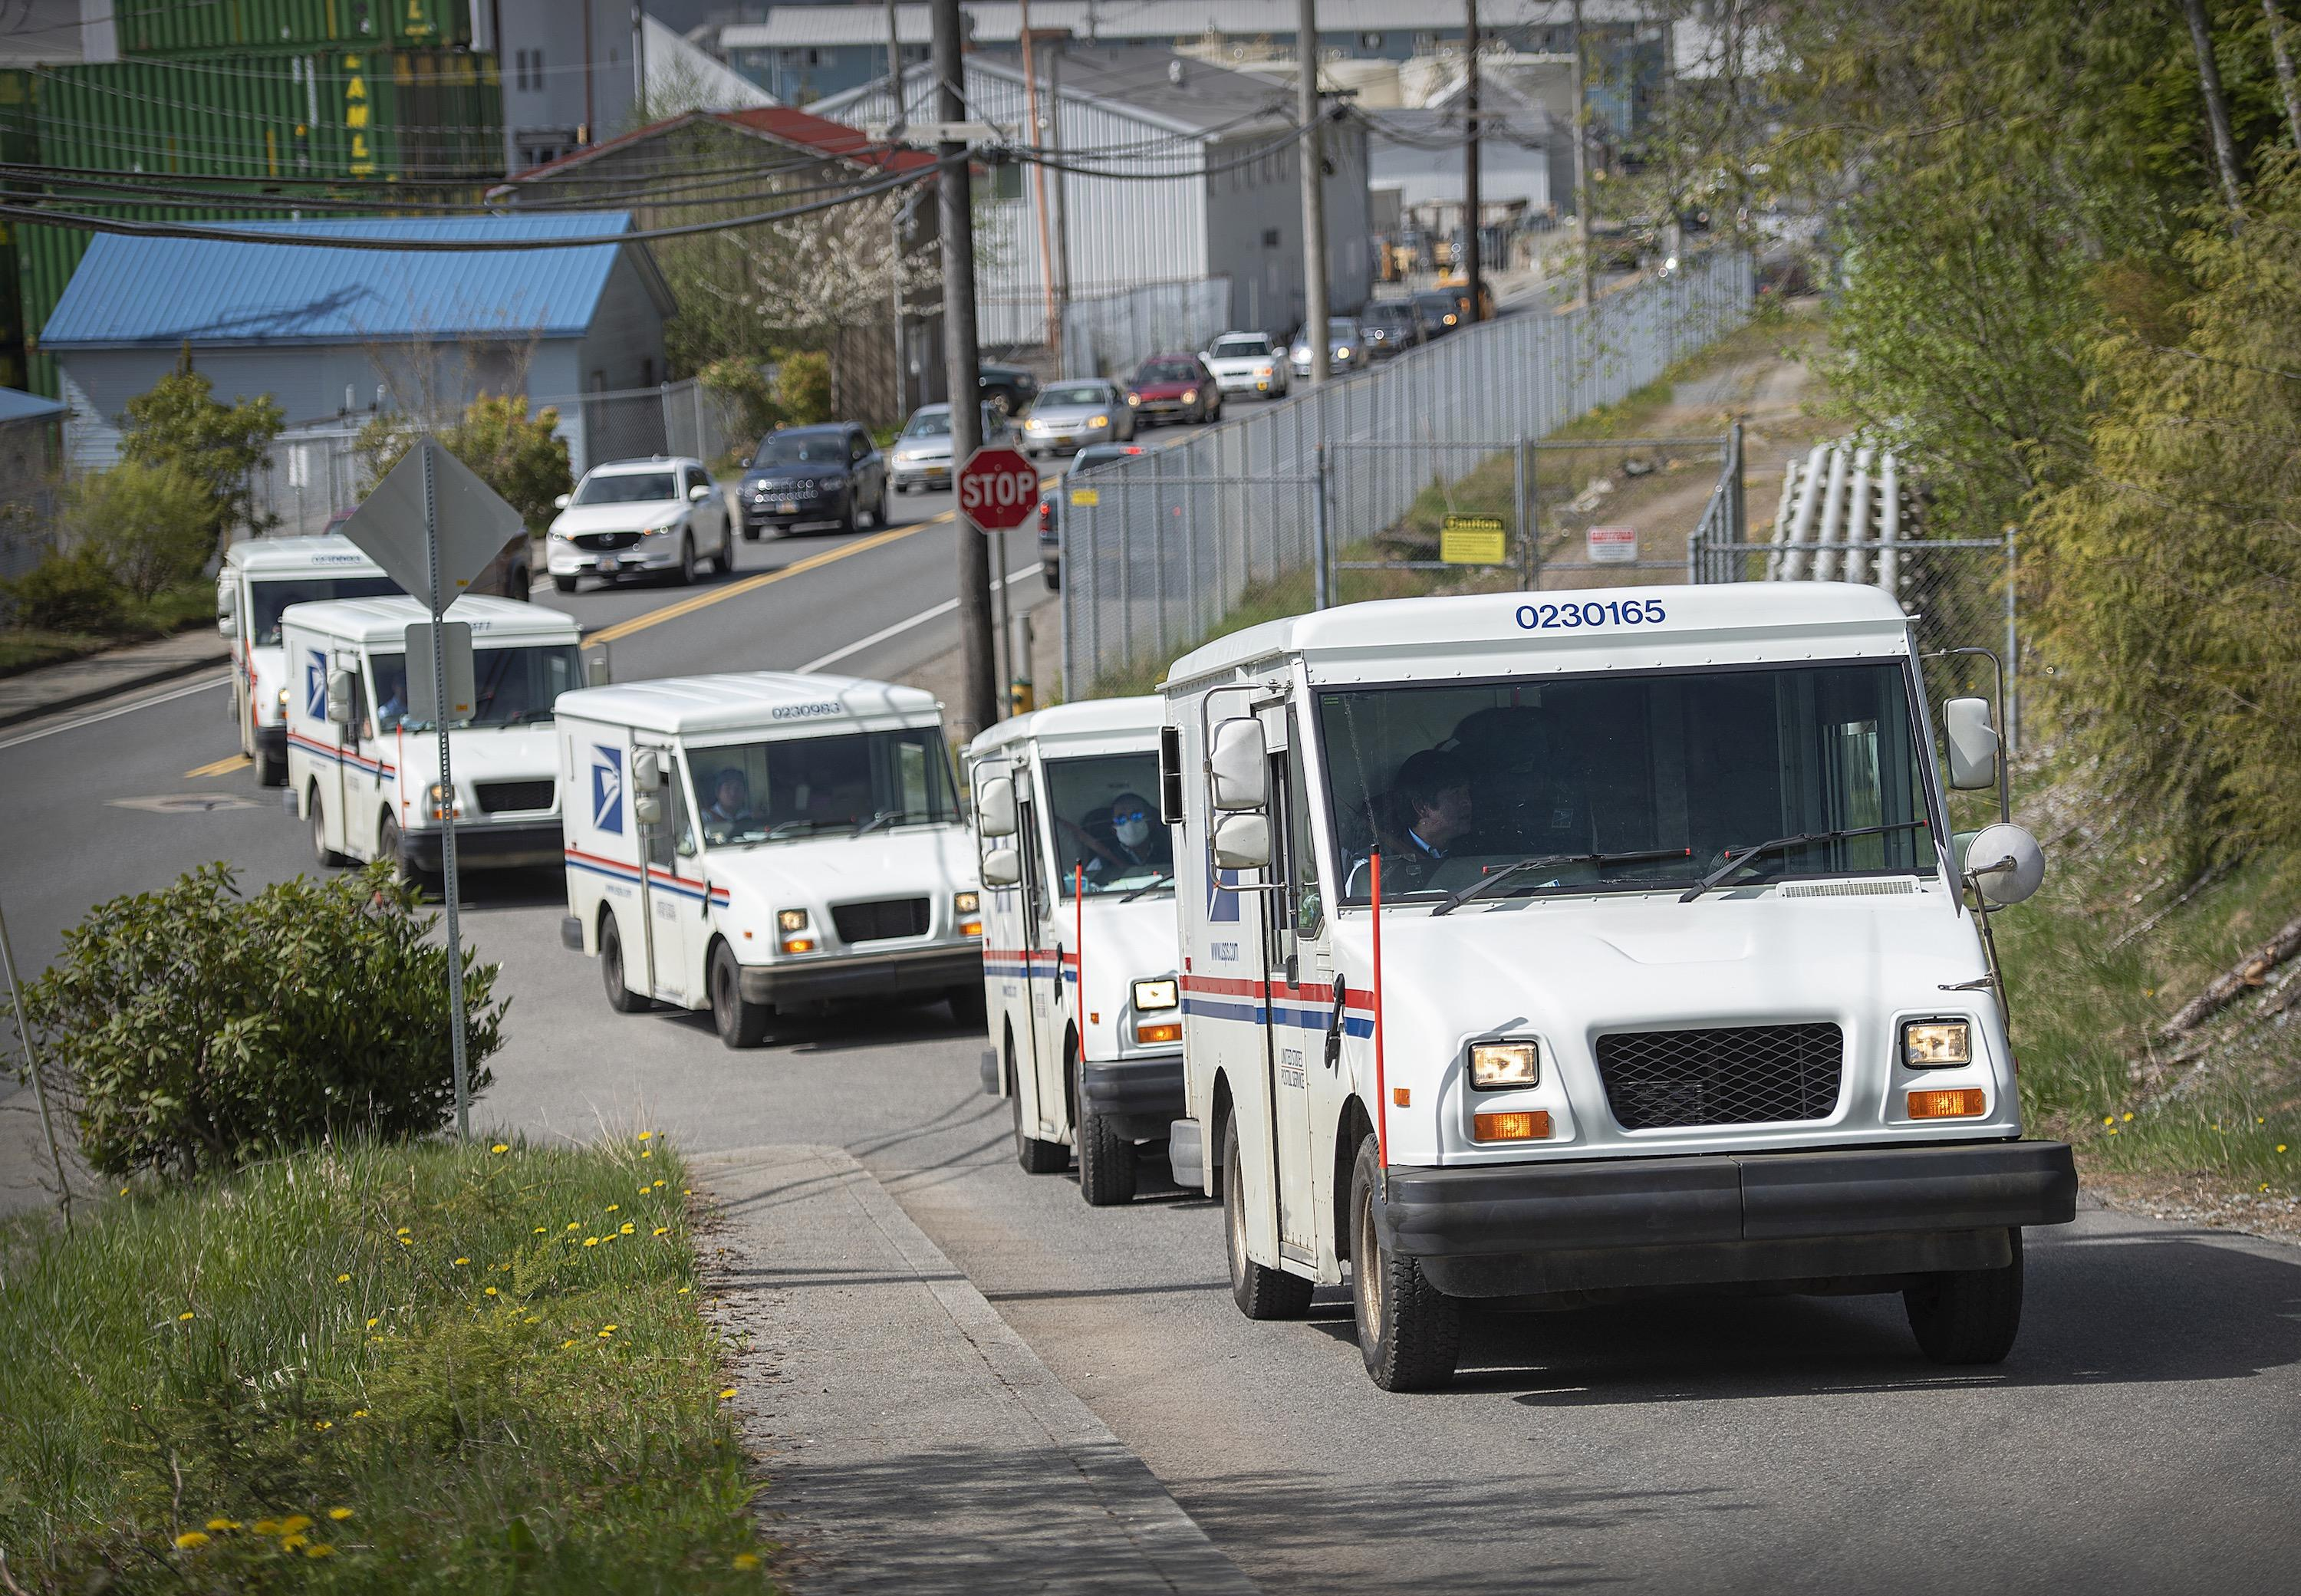 Unsanitized: Does Amazon Rip Off the Postal Service? - The ...